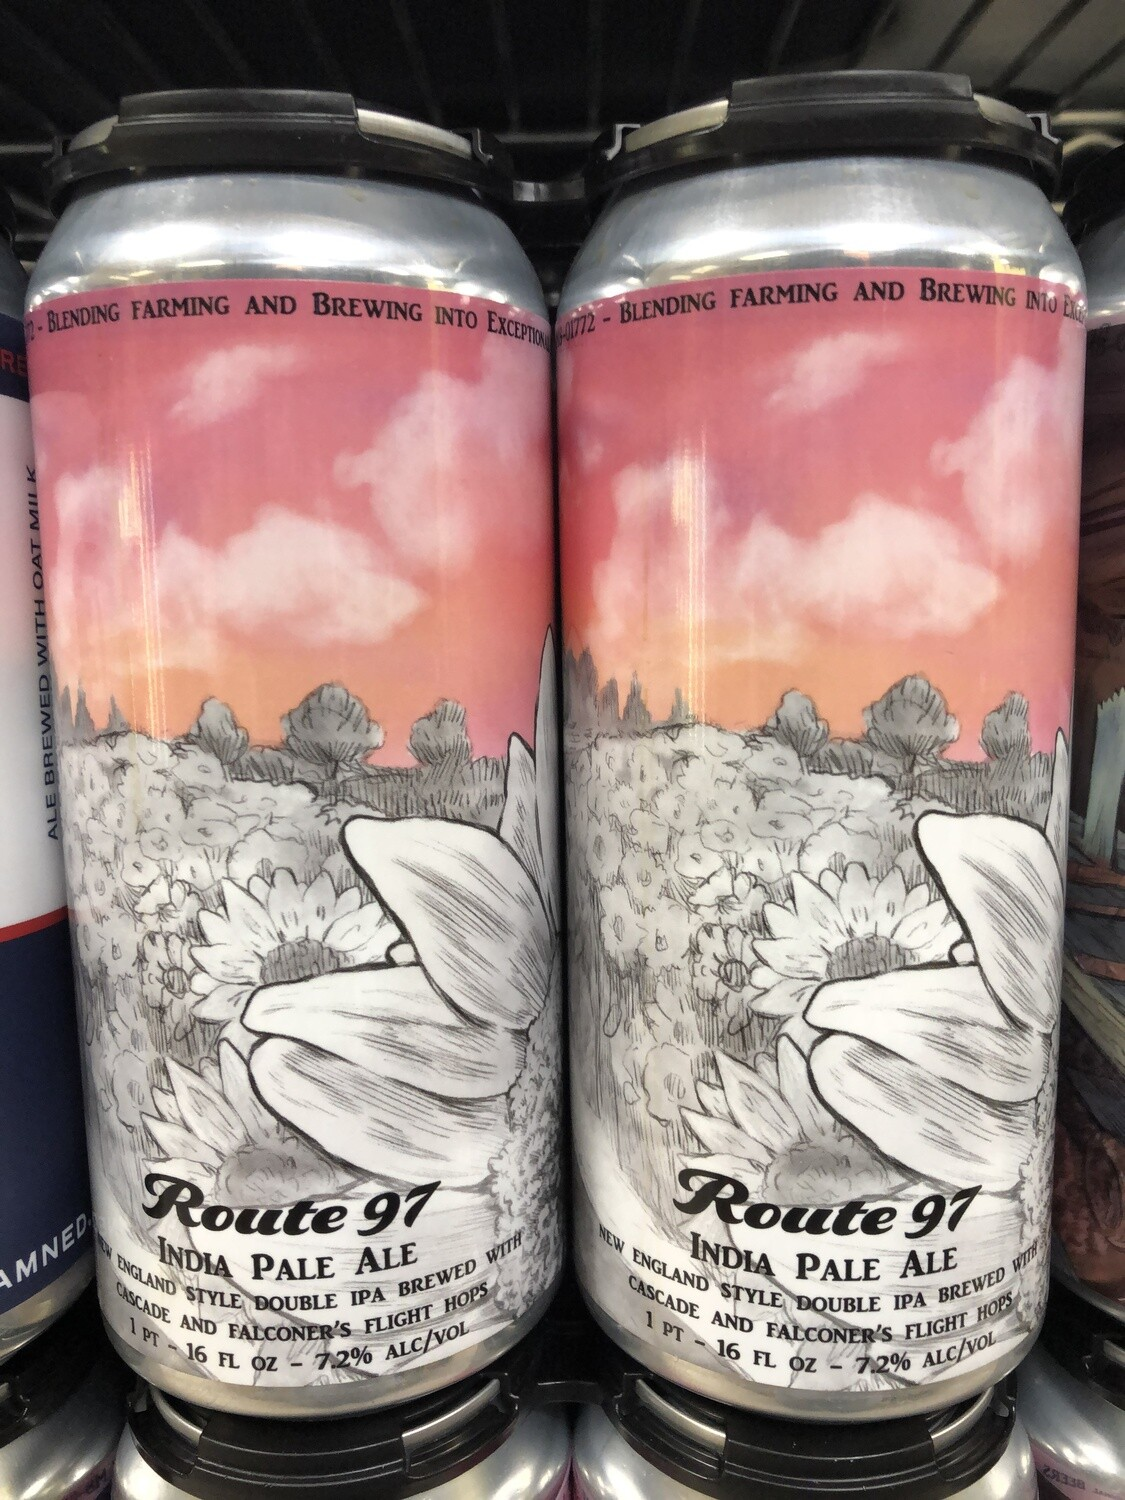 Brookeville Beer Farm - Route 97